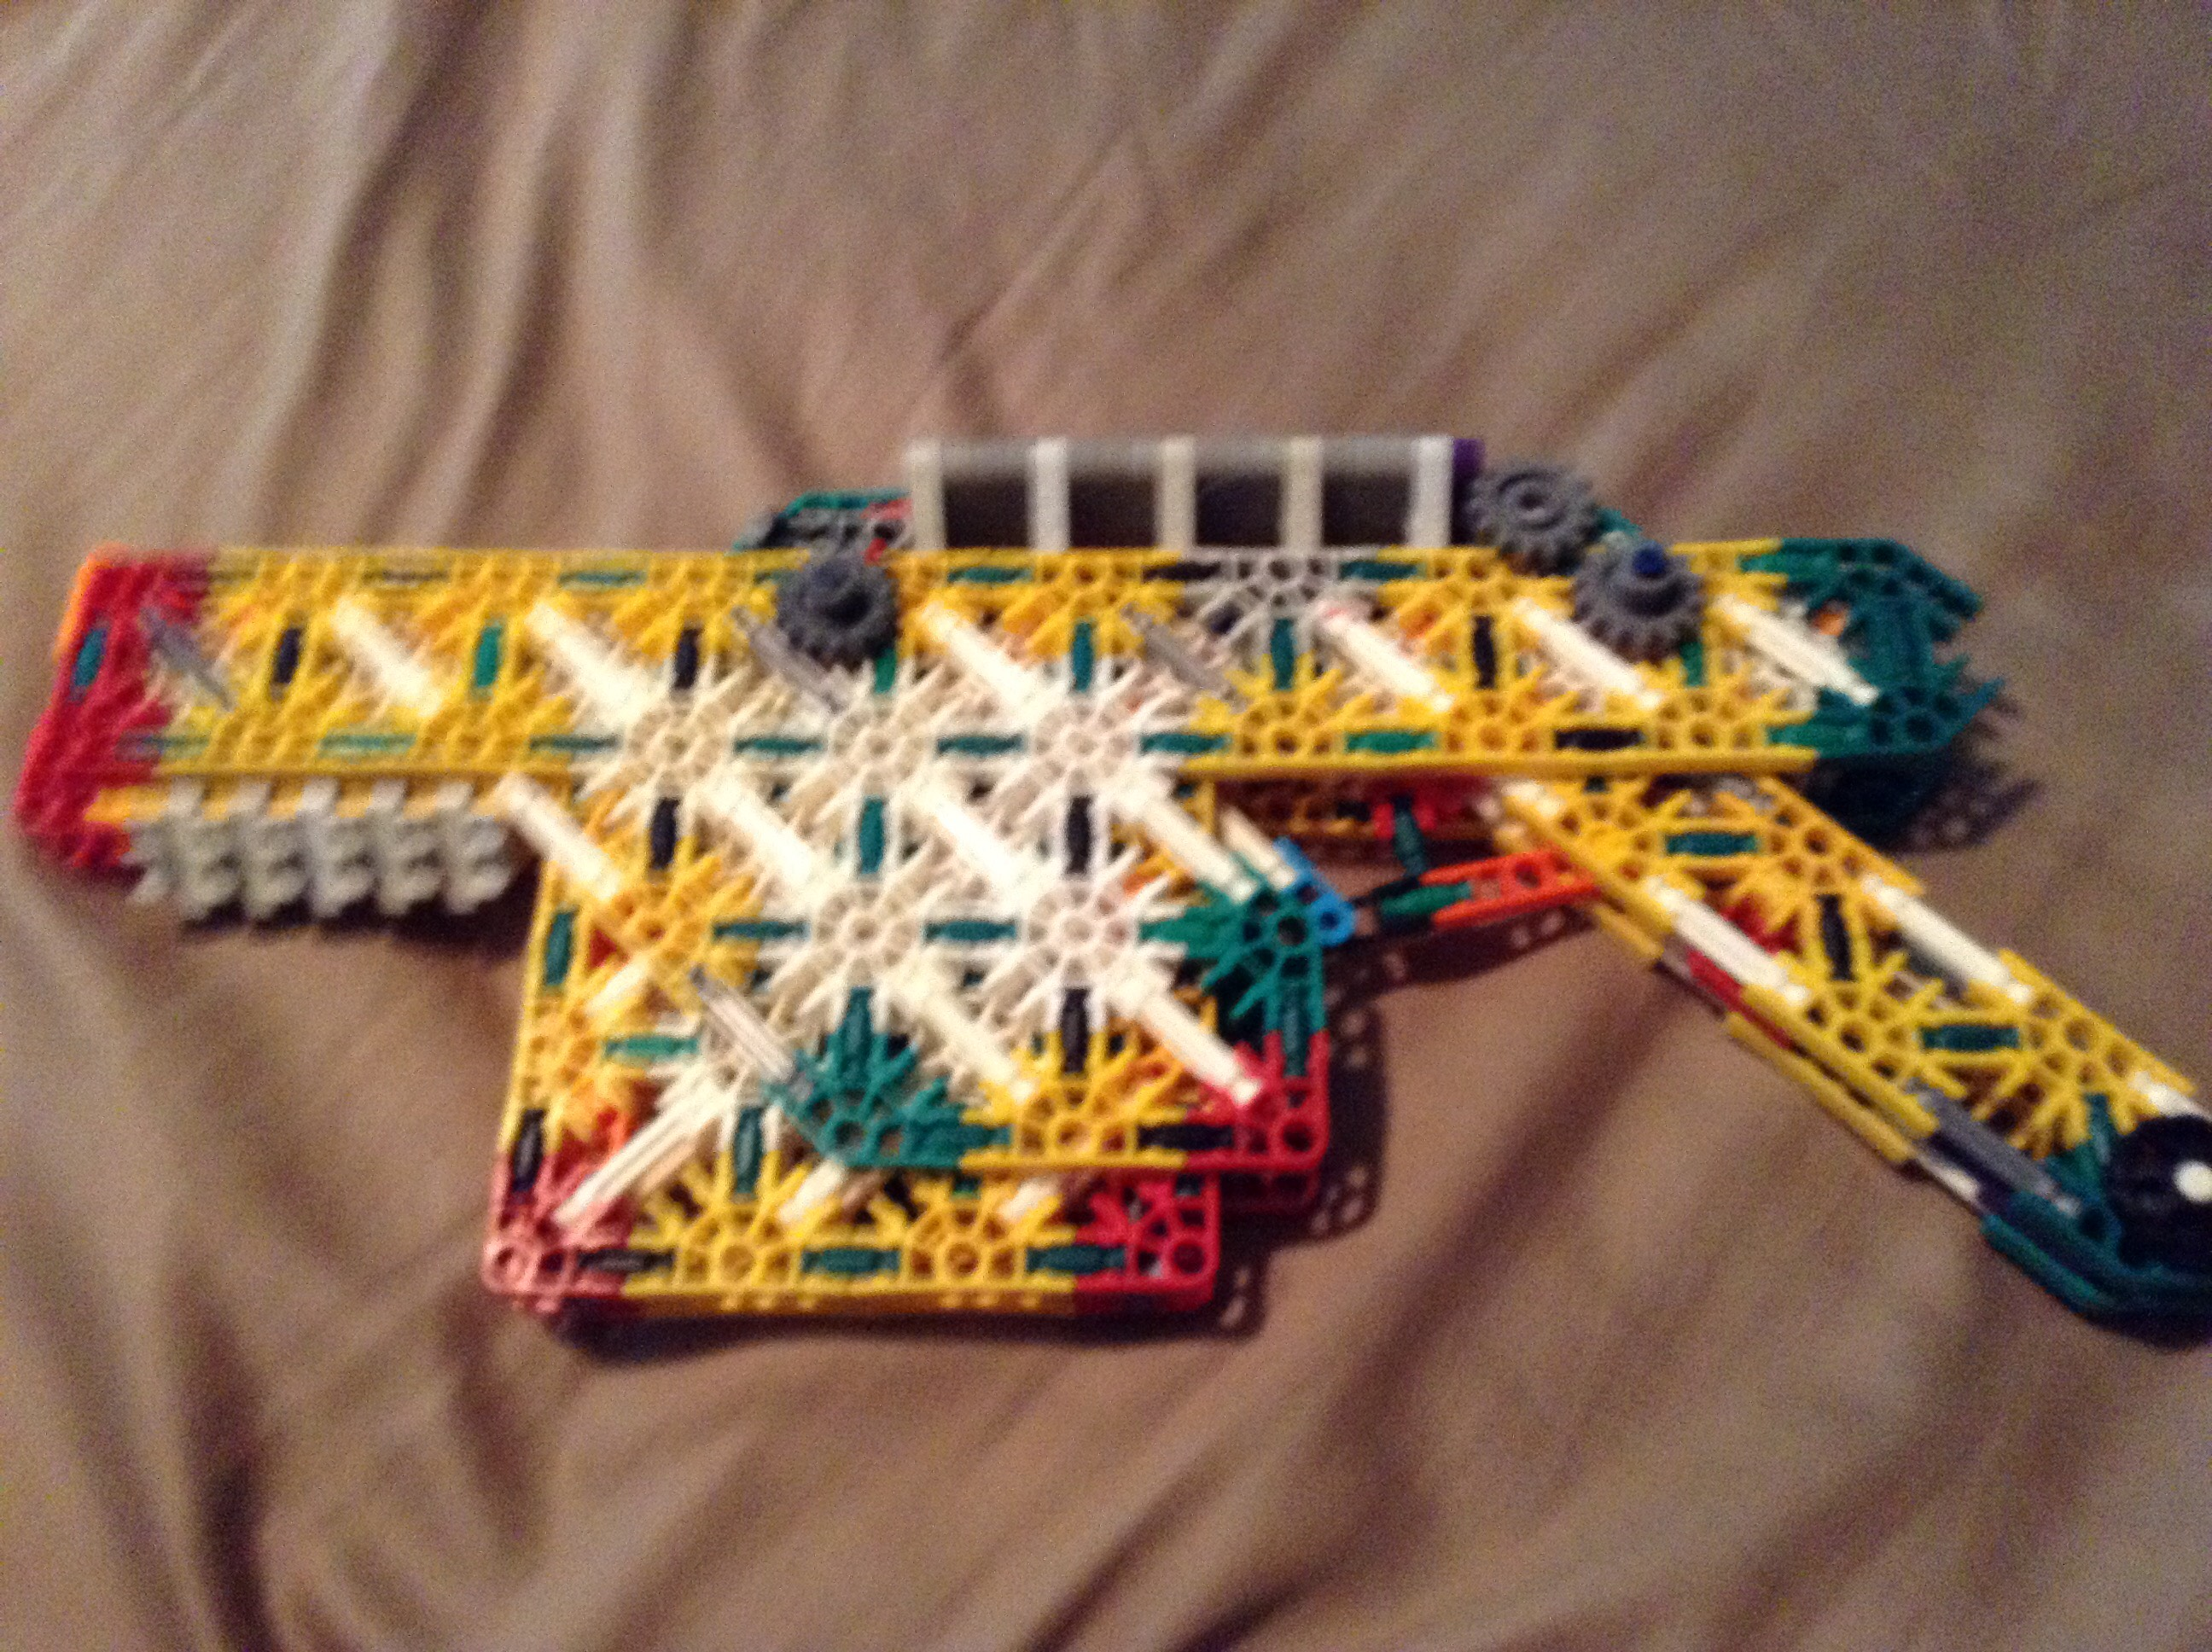 Picture of The Knex War Pistol (I Just Forgot the Name Lol)